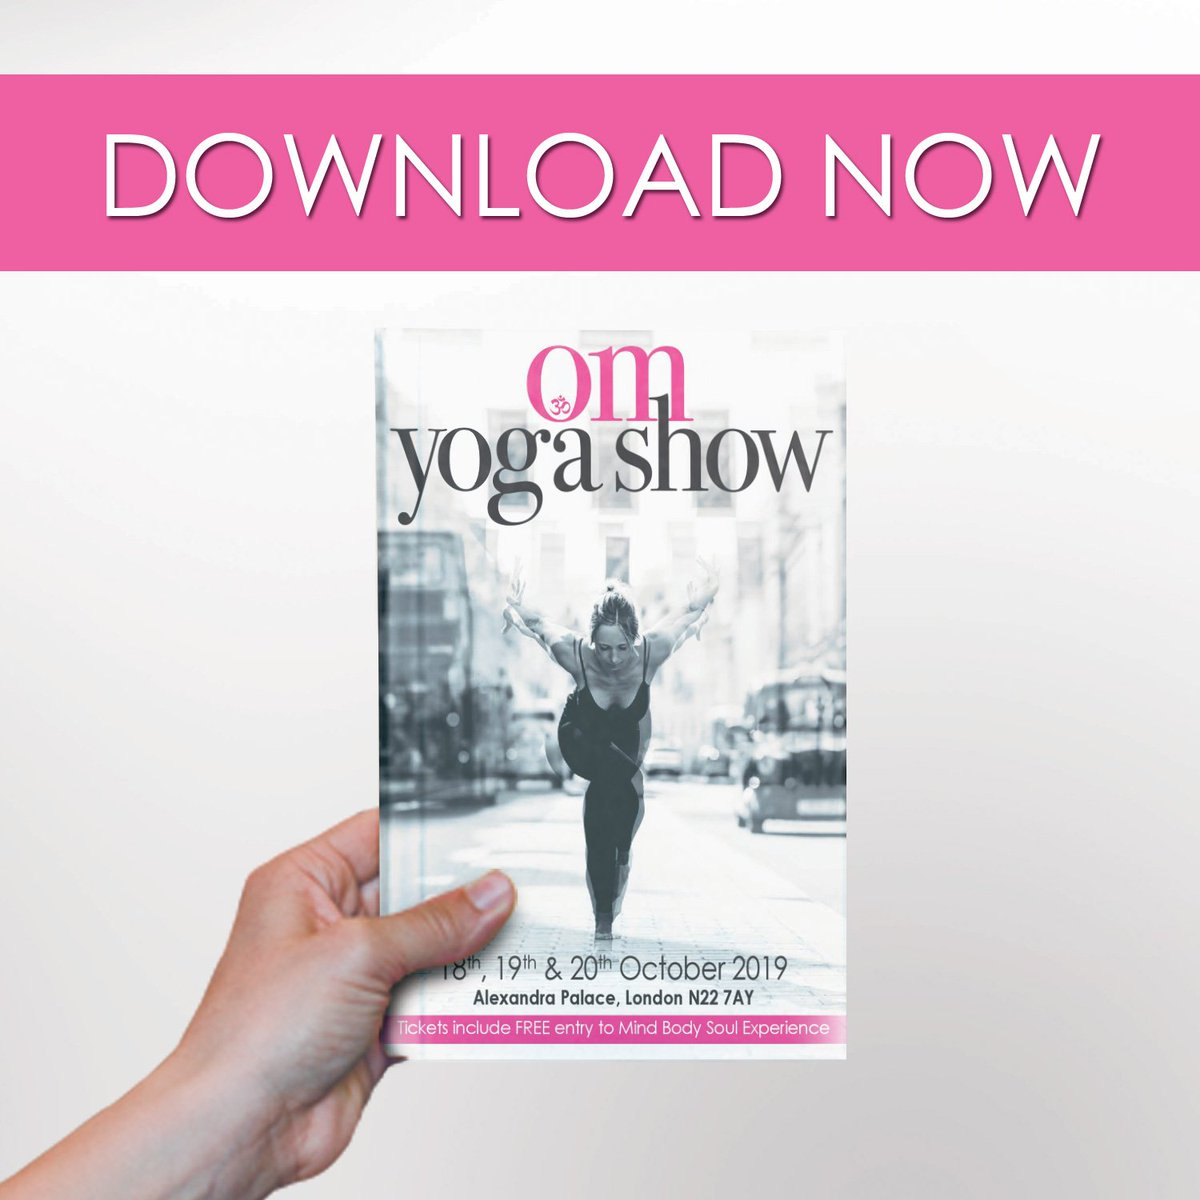 Download the show guide to see the full schedule of classes and workshops at the OM Yoga Show - plan your whole weekend before you set foot through the door!   Download now: http://bit.ly/2KZHMfx  #omyogashow